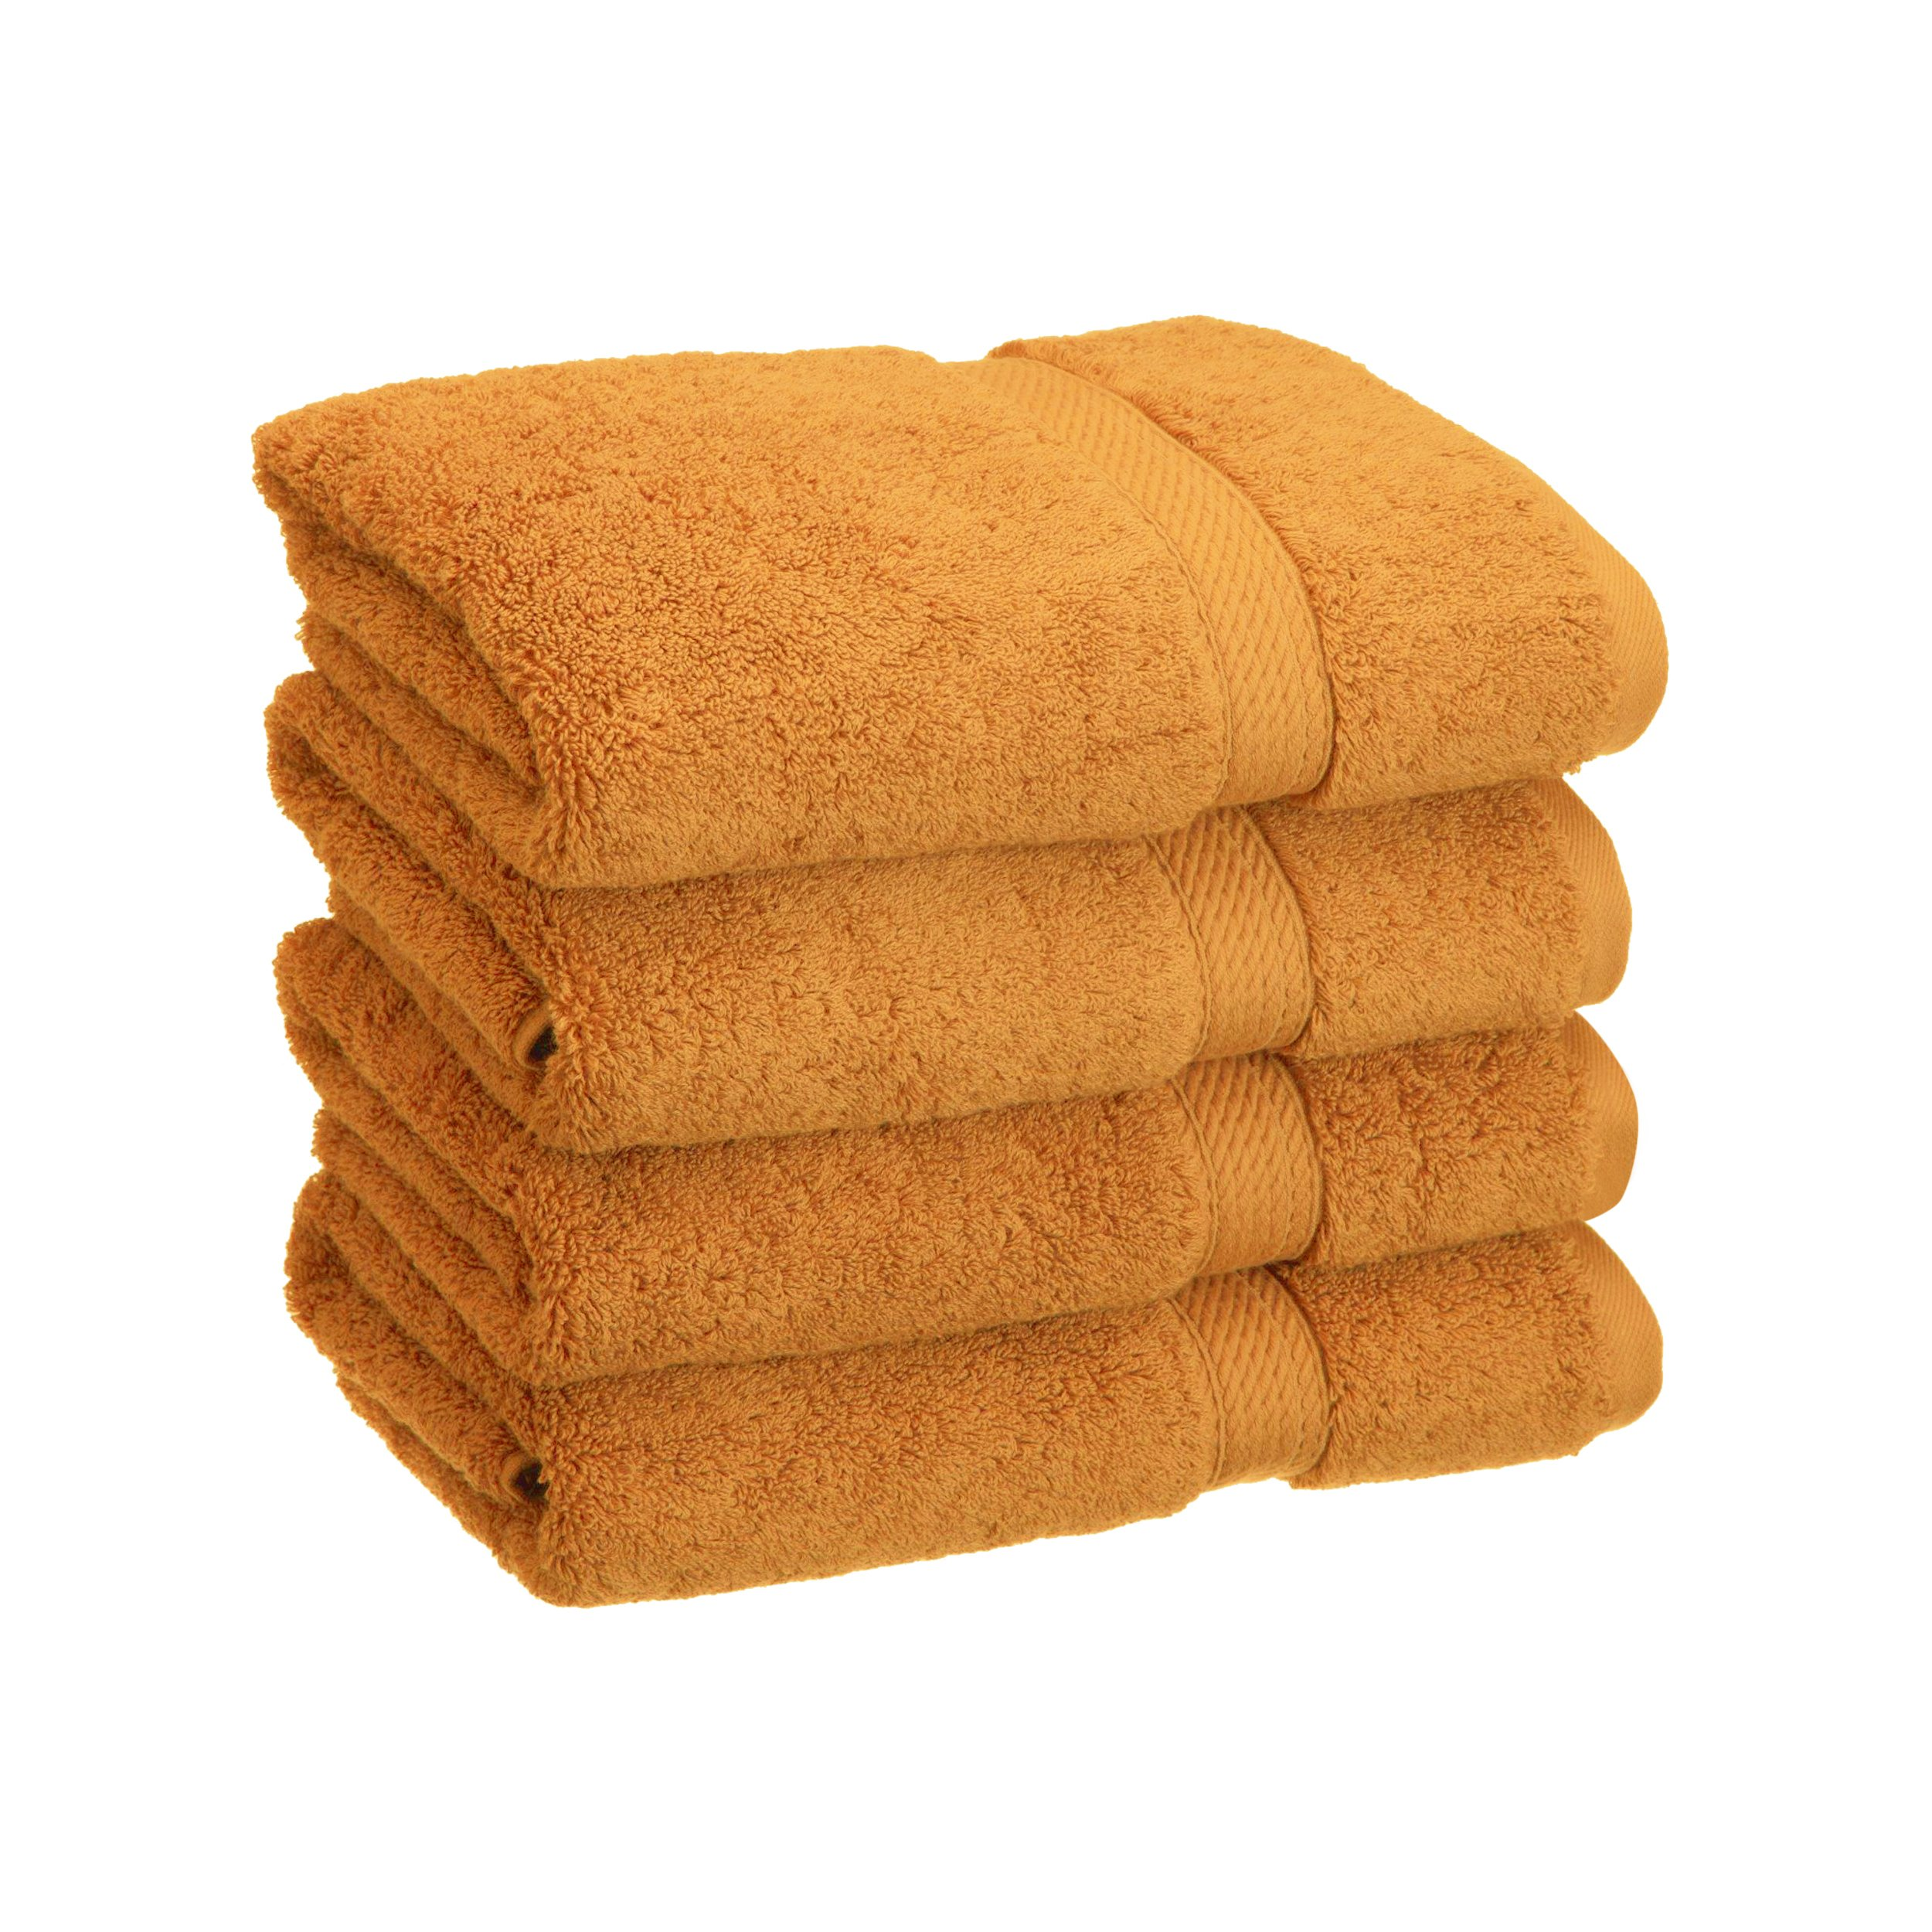 Superior 900 GSM Luxury Bathroom Hand Towels, Made